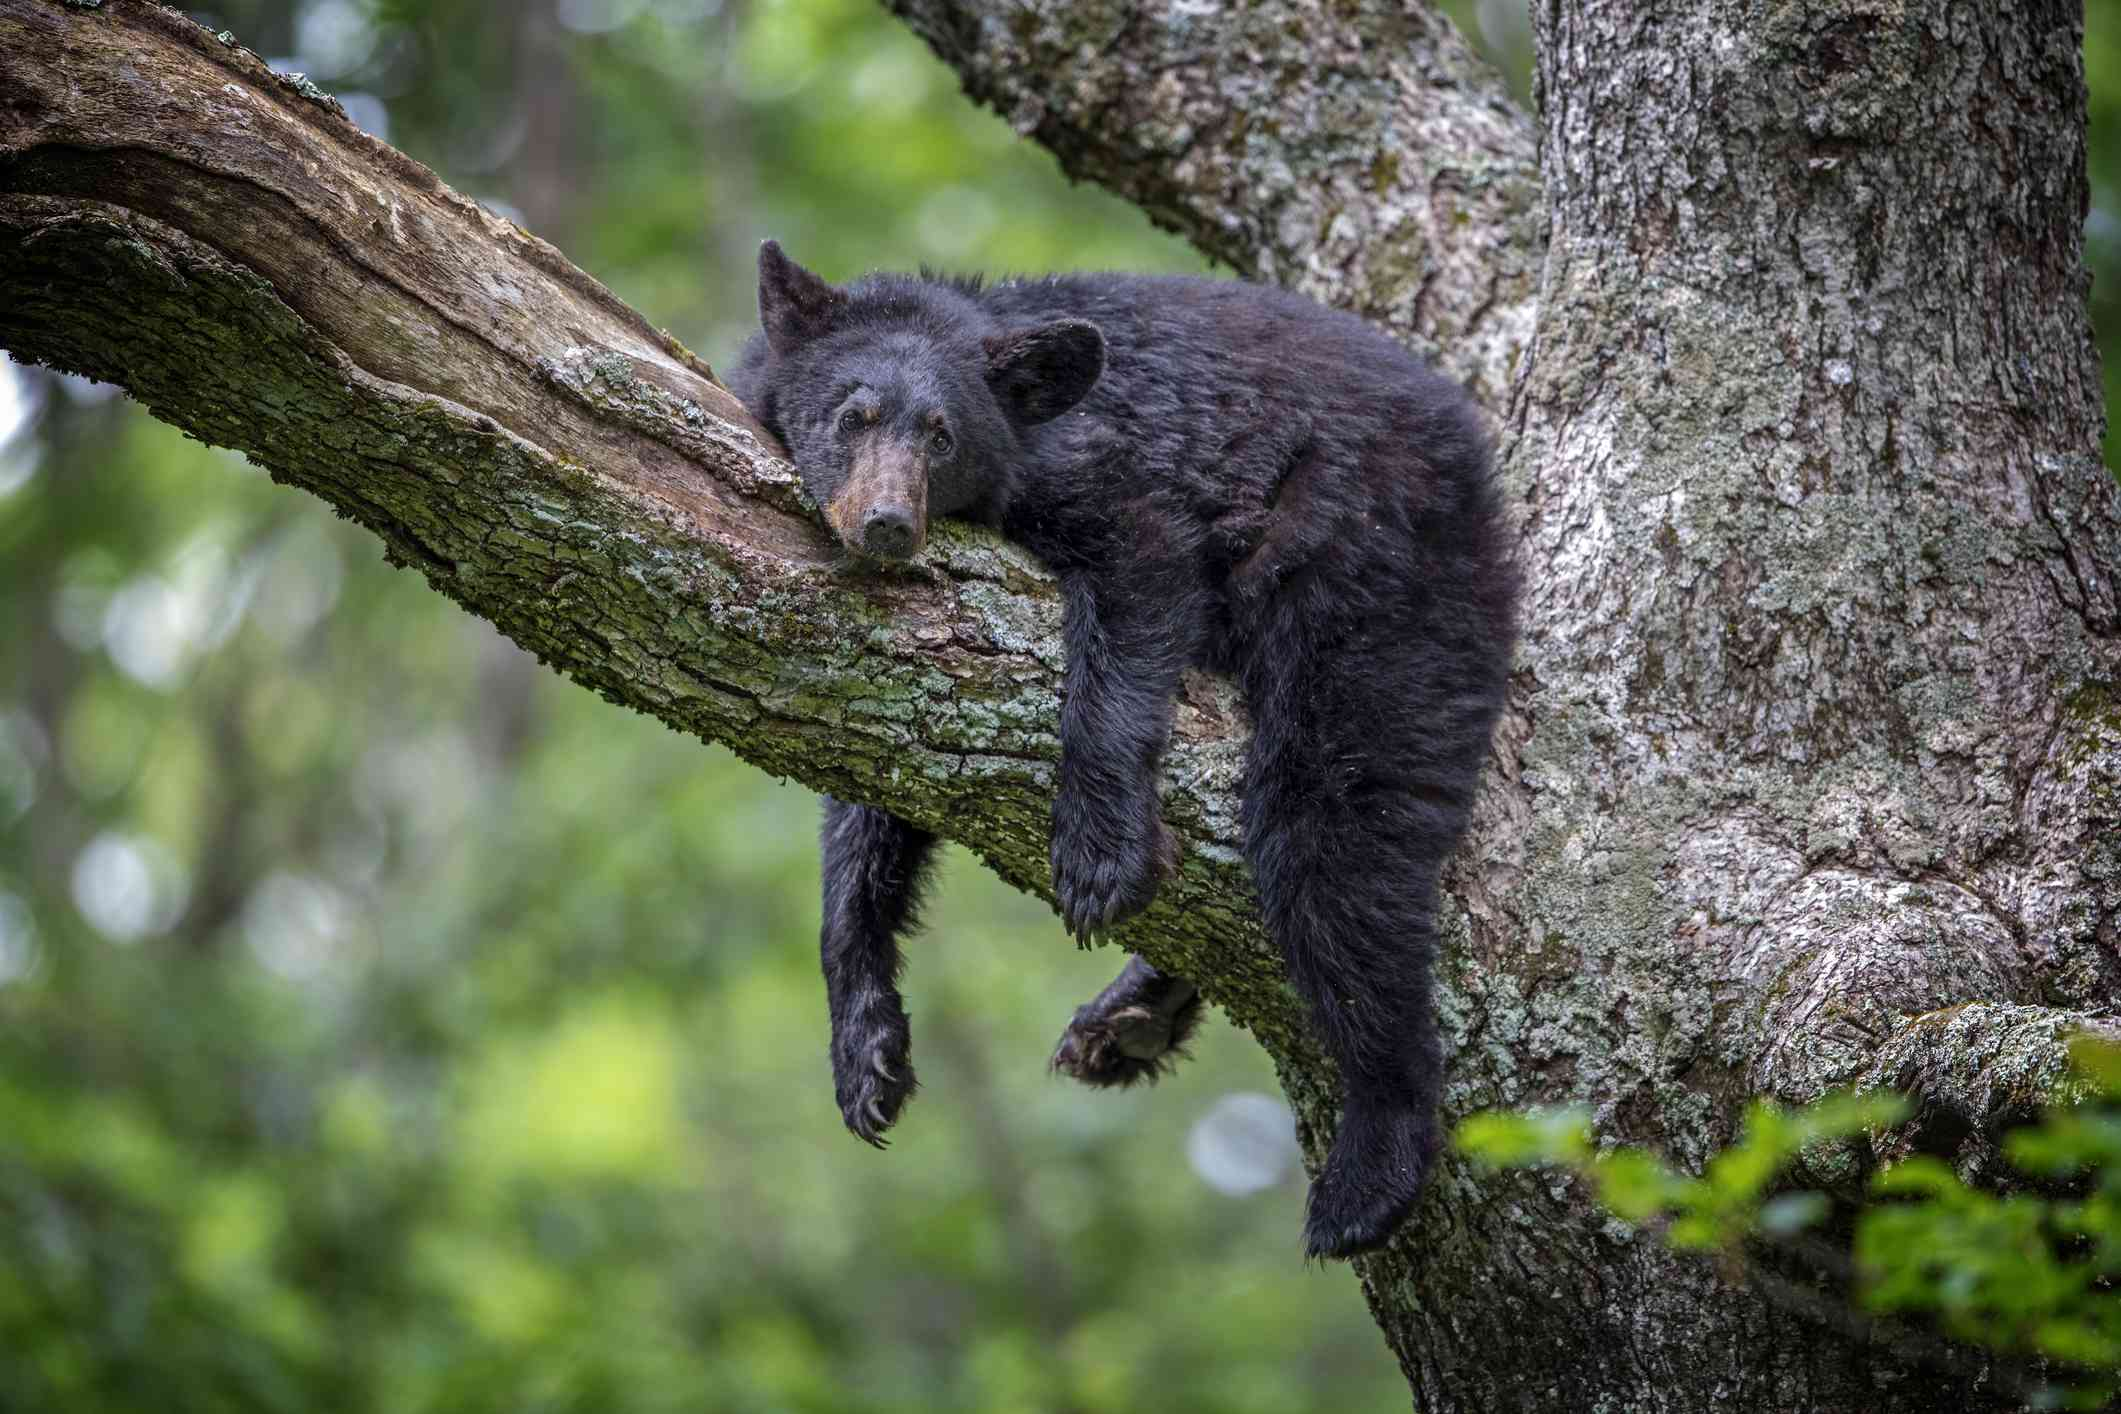 Black bears are great climbers and spend a lot of their time in trees